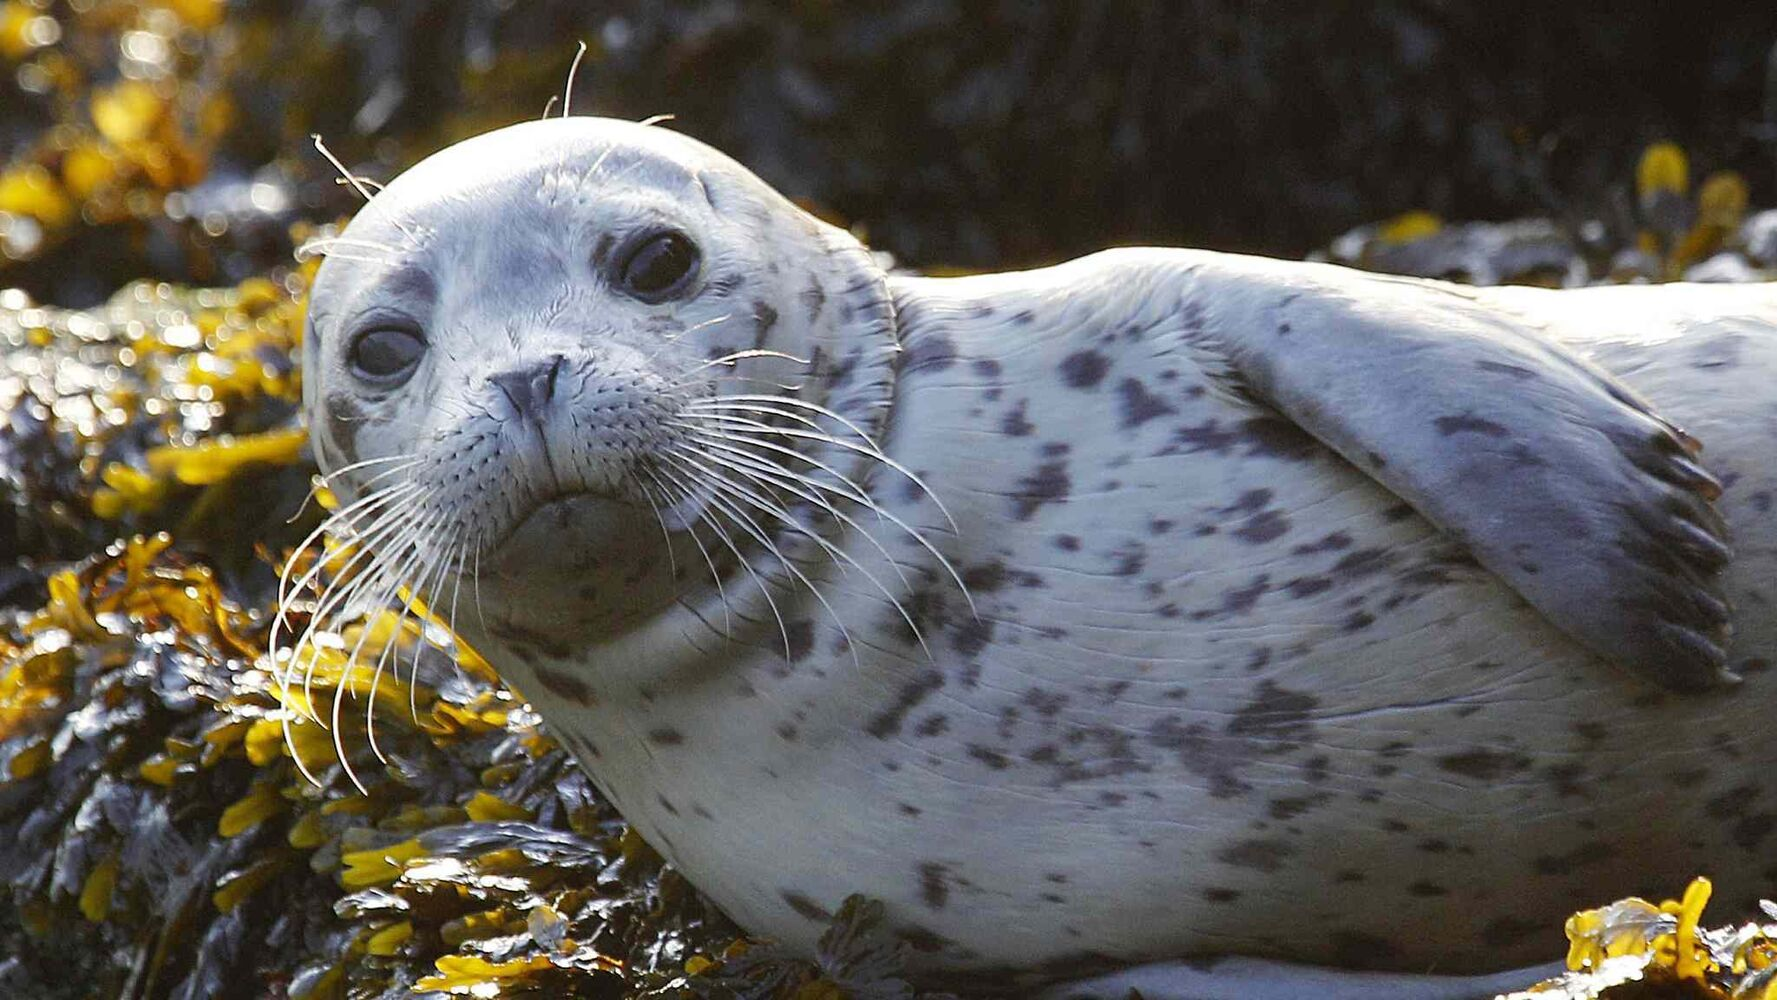 A harbor seal pup looks up at a visitor as he rests on seaweed-covered rocks after coming in on the high tide Wednesday morning, Oct. 12, 2011, in the West Seattle neighborhood of Seattle. (Elaine Thompson / The Associated Press)